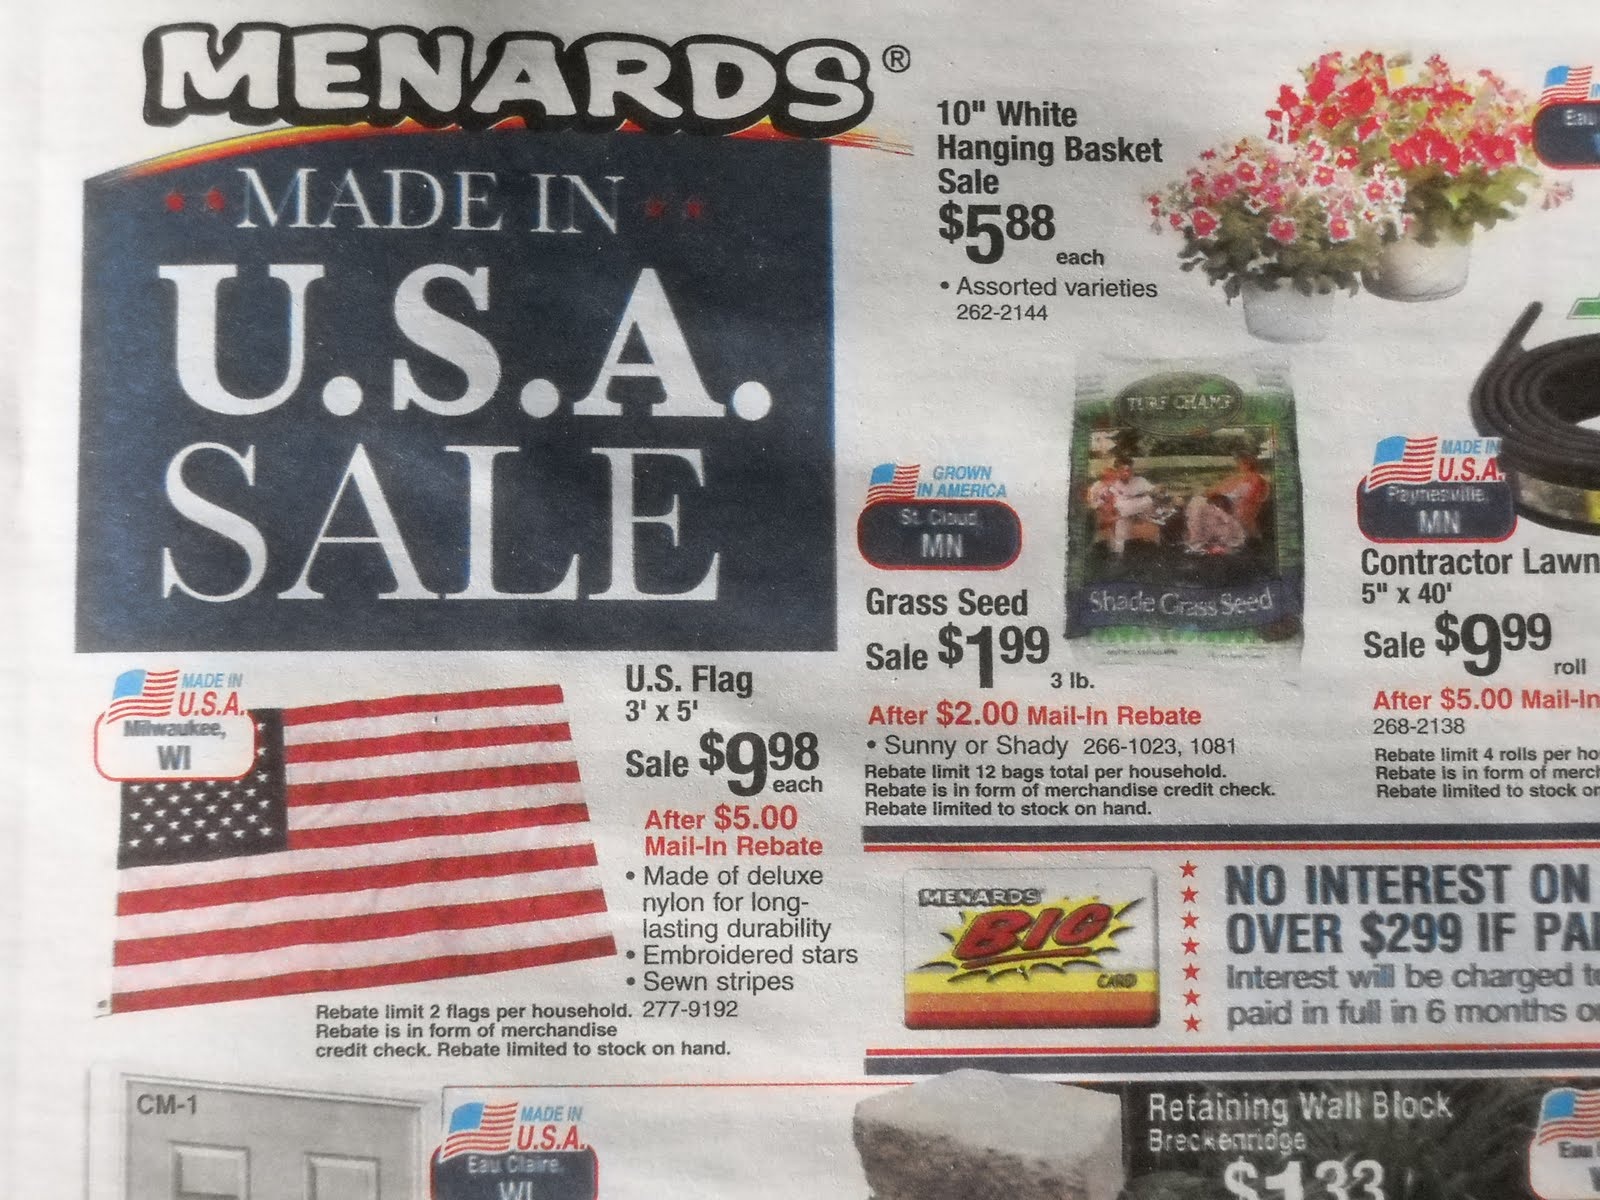 Menards, a supplier of appliances, renovation materials, home decor and many more essentials, offers you multiple ways to save. Sign up online, and you'll receive promotional offers and weekly flyers for their in-store locations. Online, you can receive free gifts with purchase, limited-time deals and long bargain lists of home maintenance appliances and materials%().